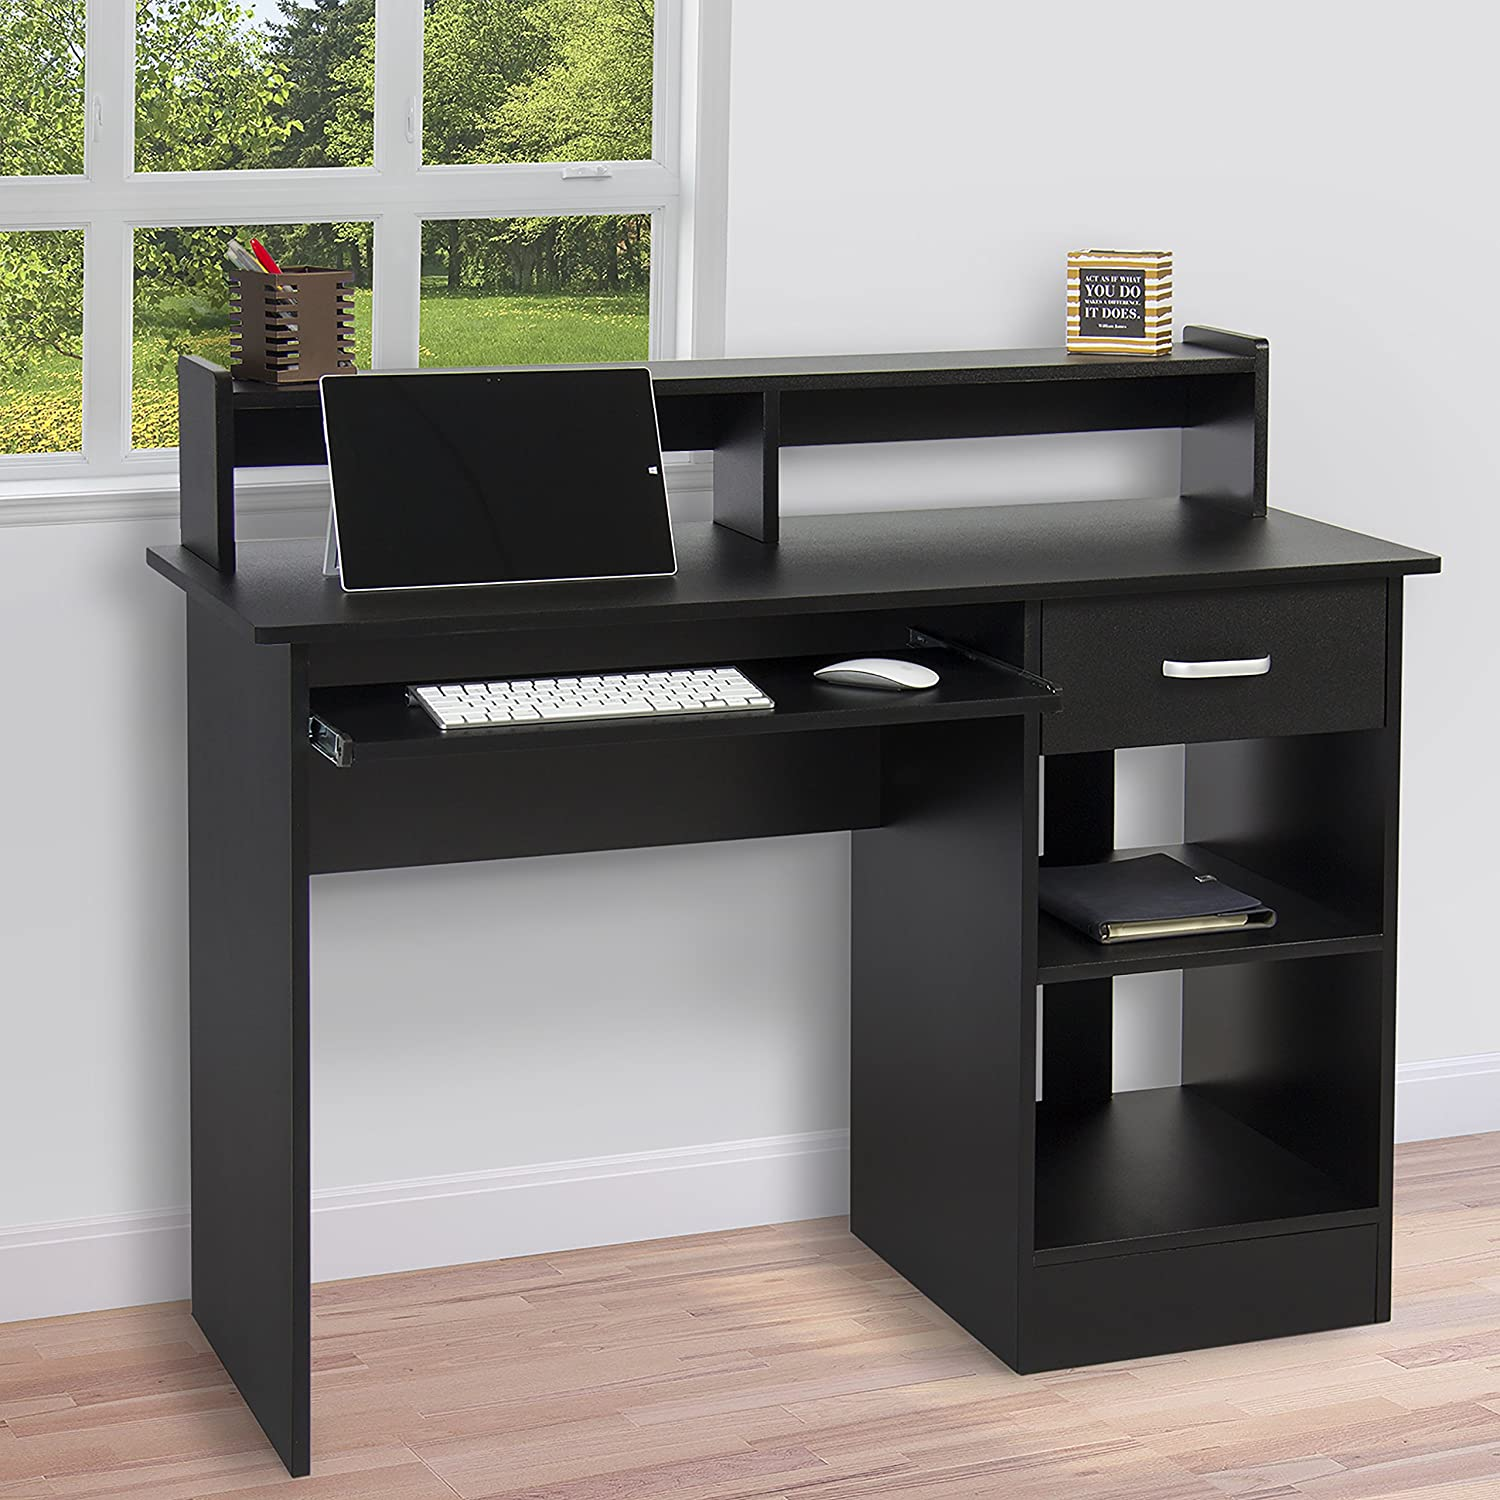 Amazon.com: Best Choice Products Computer Desk Home Laptop Table College  Home Office Furniture Work Station Blk: Home U0026 Kitchen